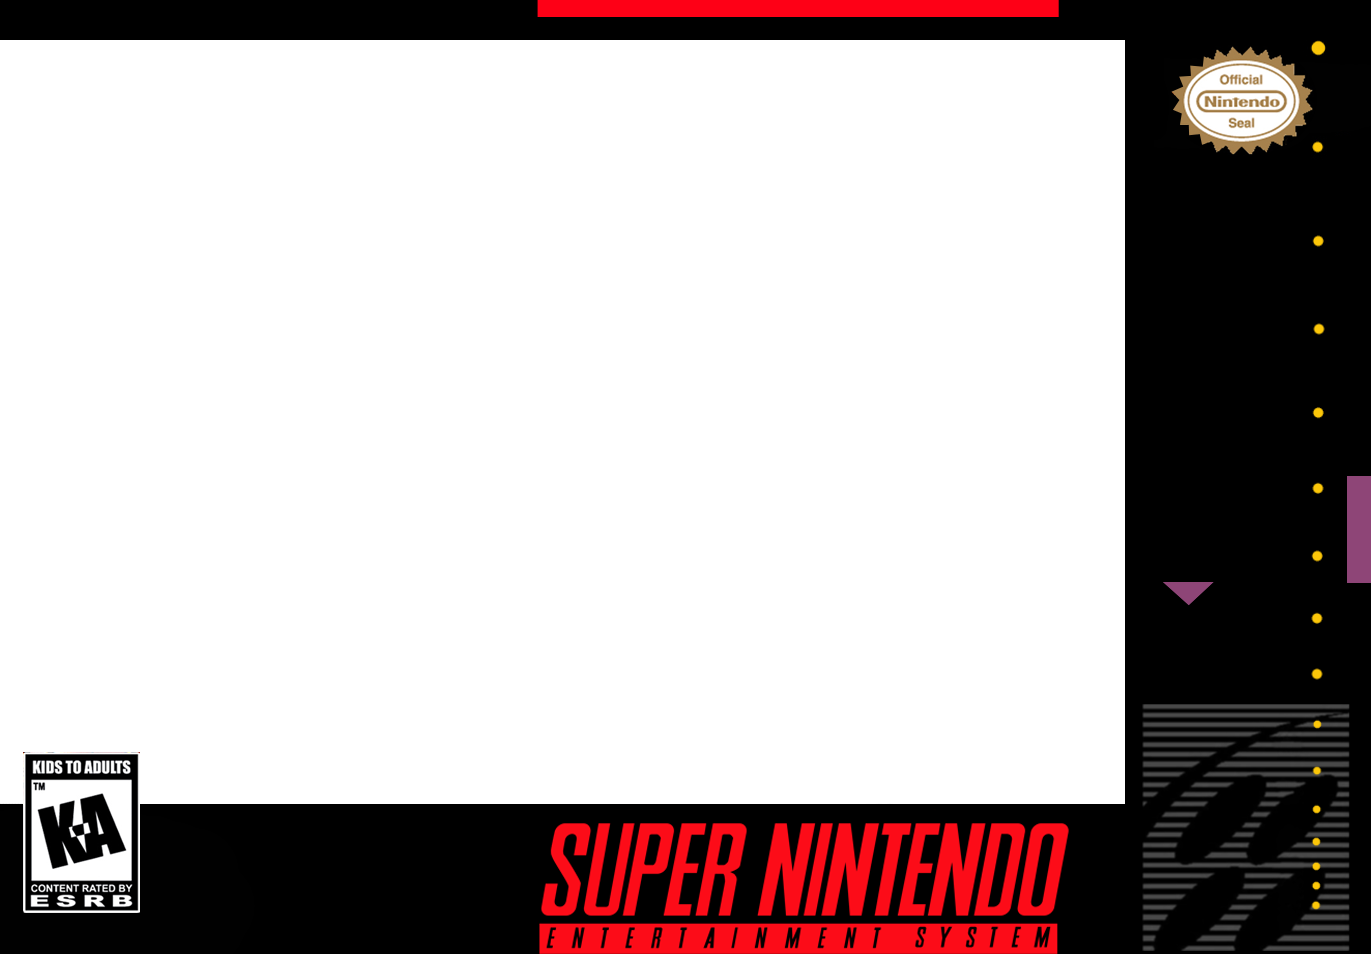 Snes box art png. Templates for nes classic